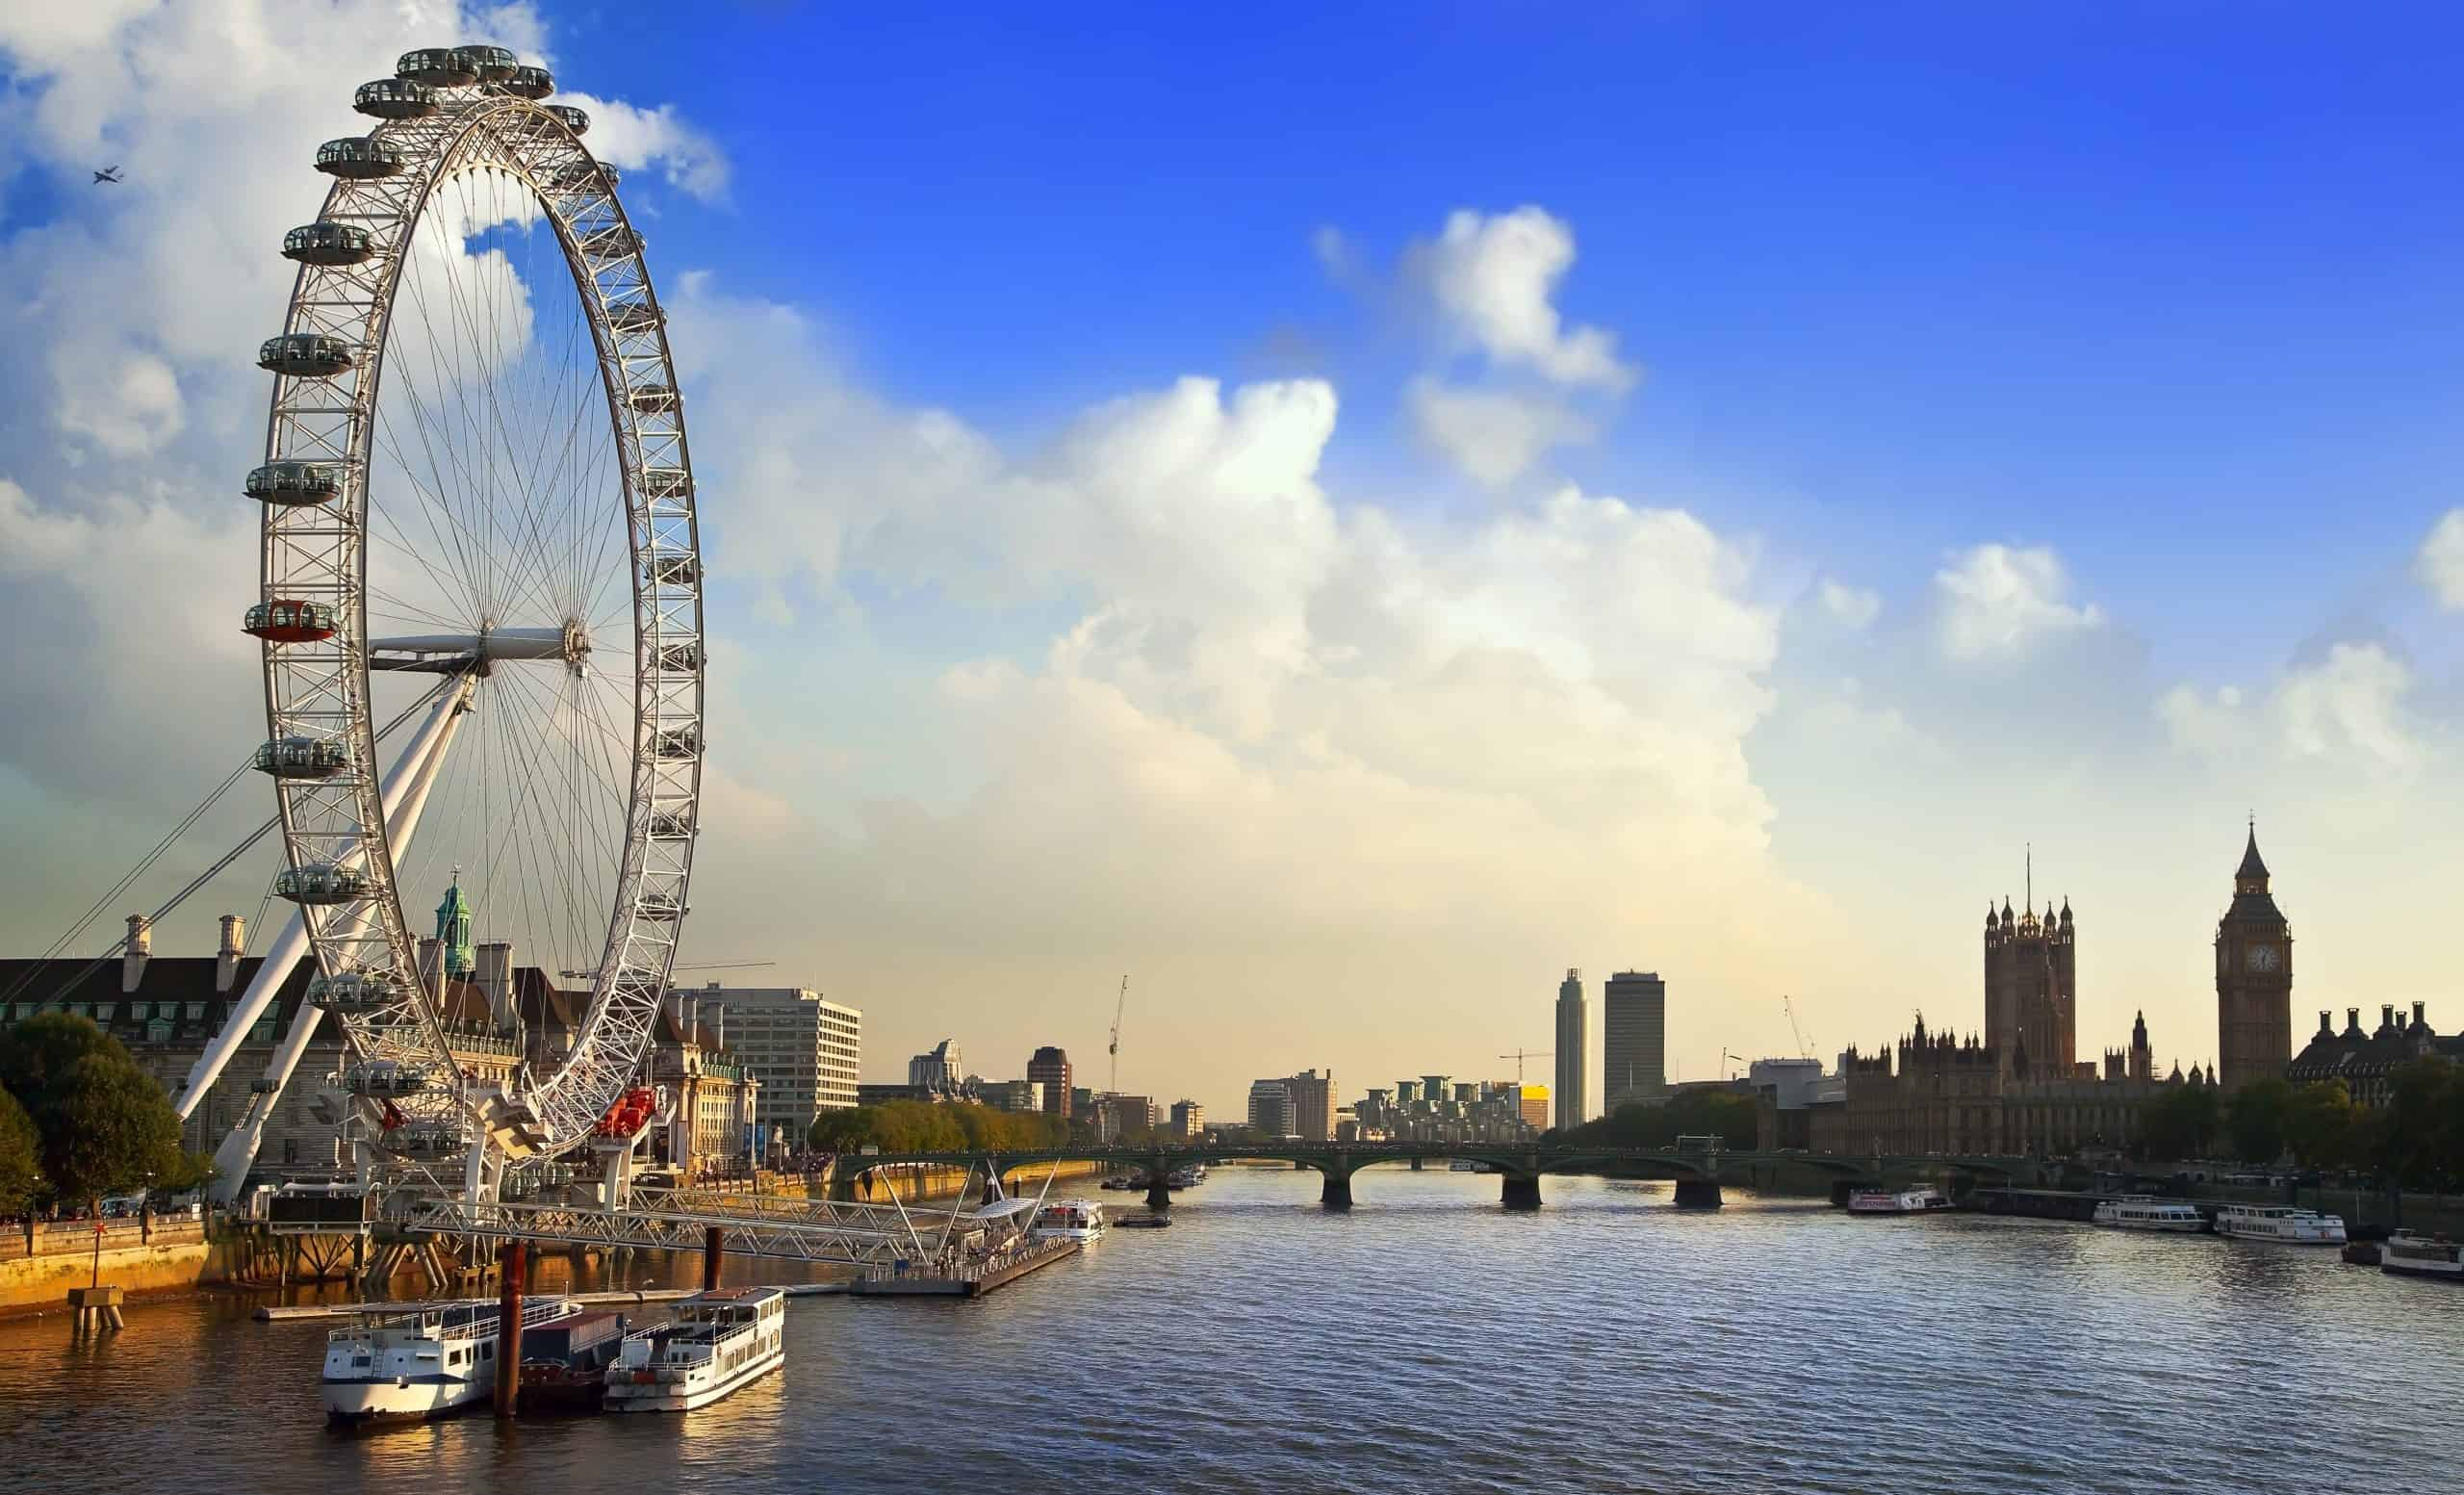 London Eye on the Thames river - fun things to do in london and romantic things to do in london